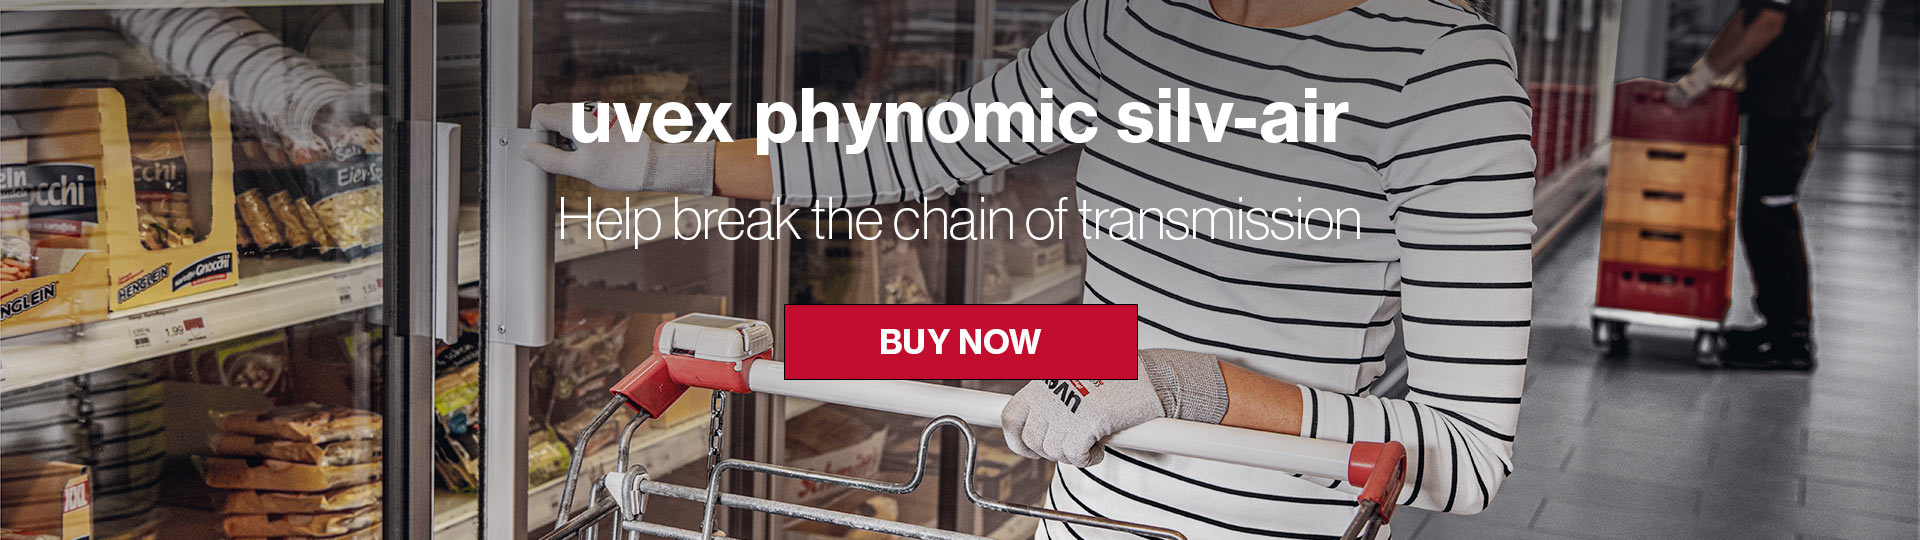 Wearing the uvex phynomic silv-air glove while shopping